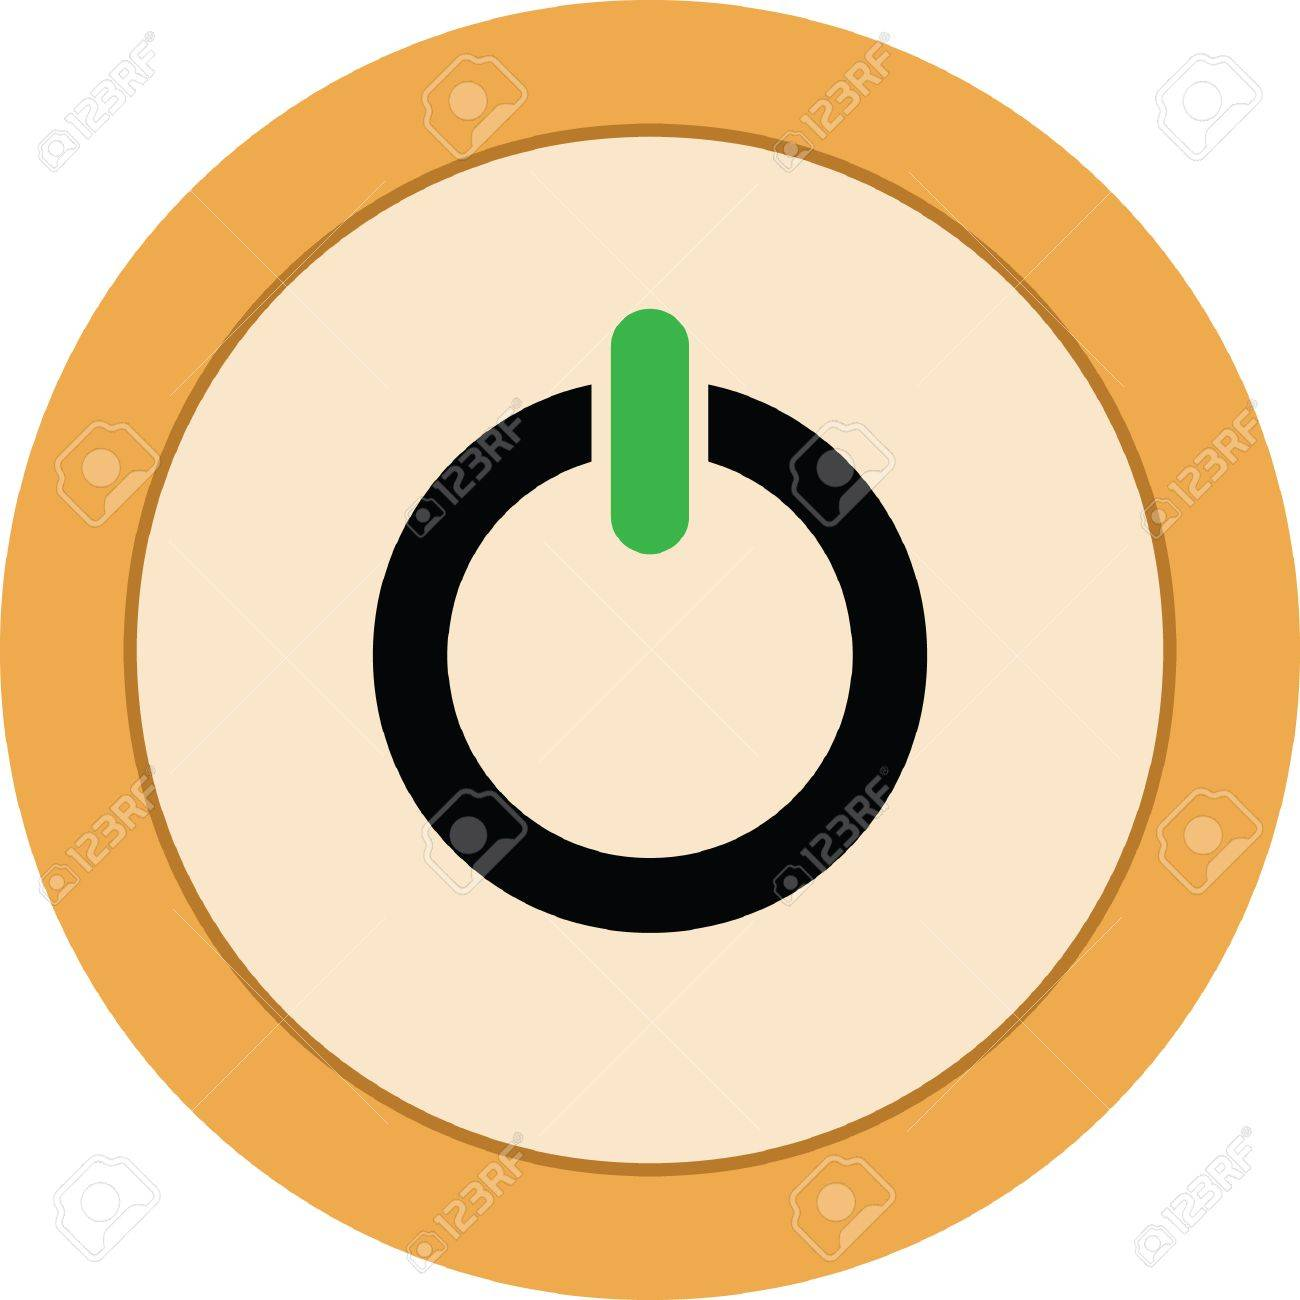 power button vector icon royalty free cliparts vectors and stock rh 123rf com power button vector download power button vector graphic